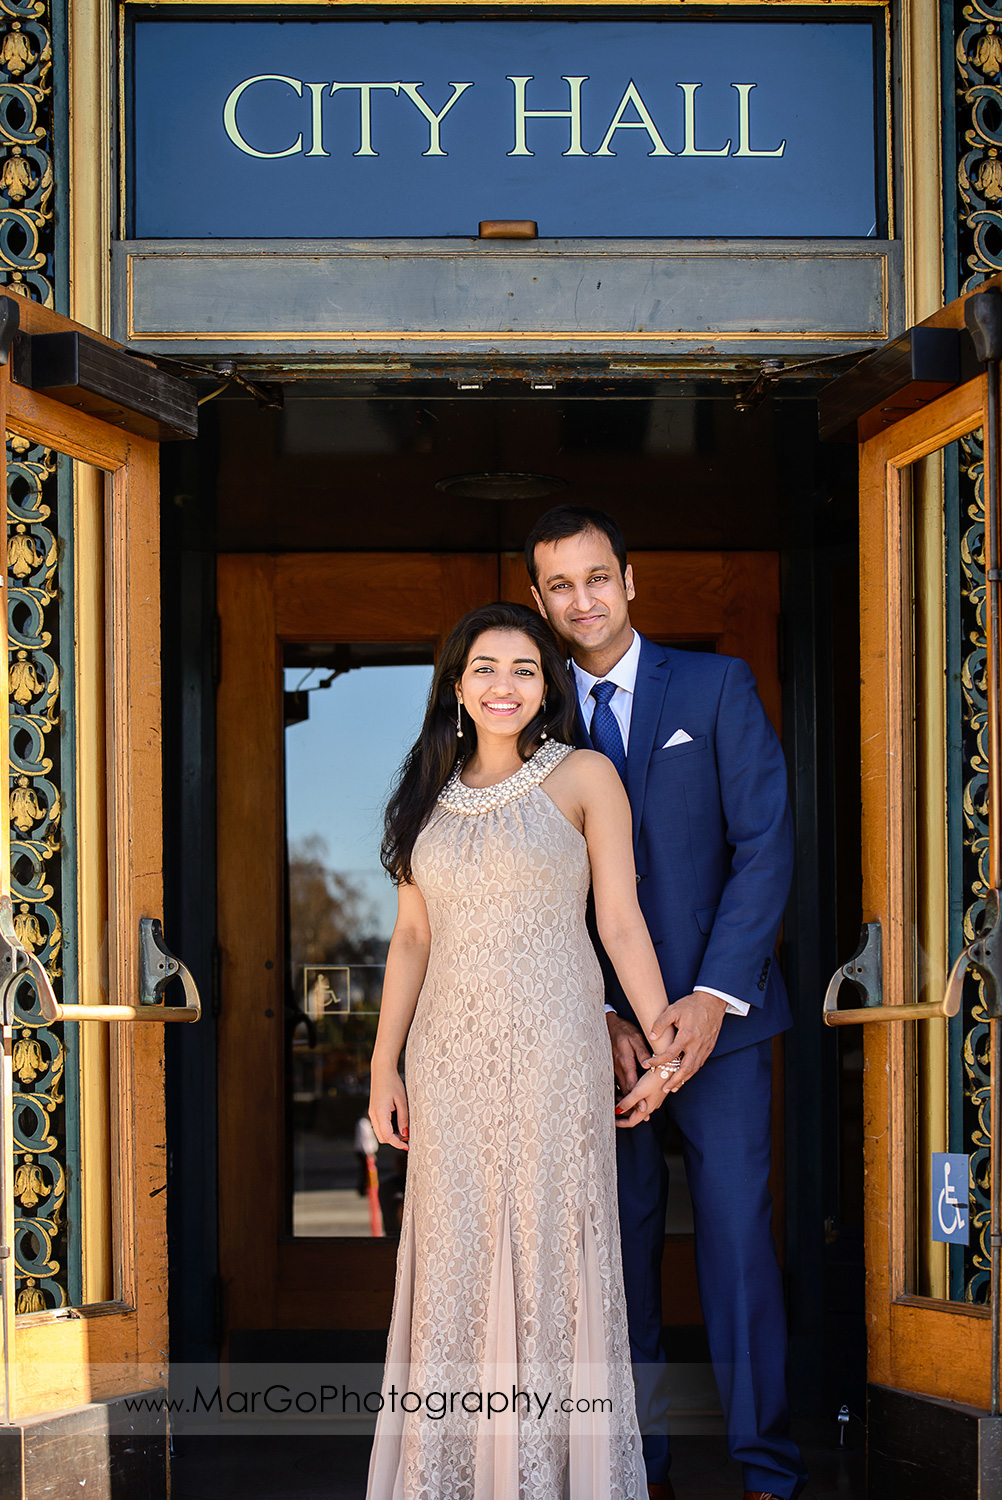 portrait of woman in beige dress and man in navy blue suit in San Francisco City Hall entrance door